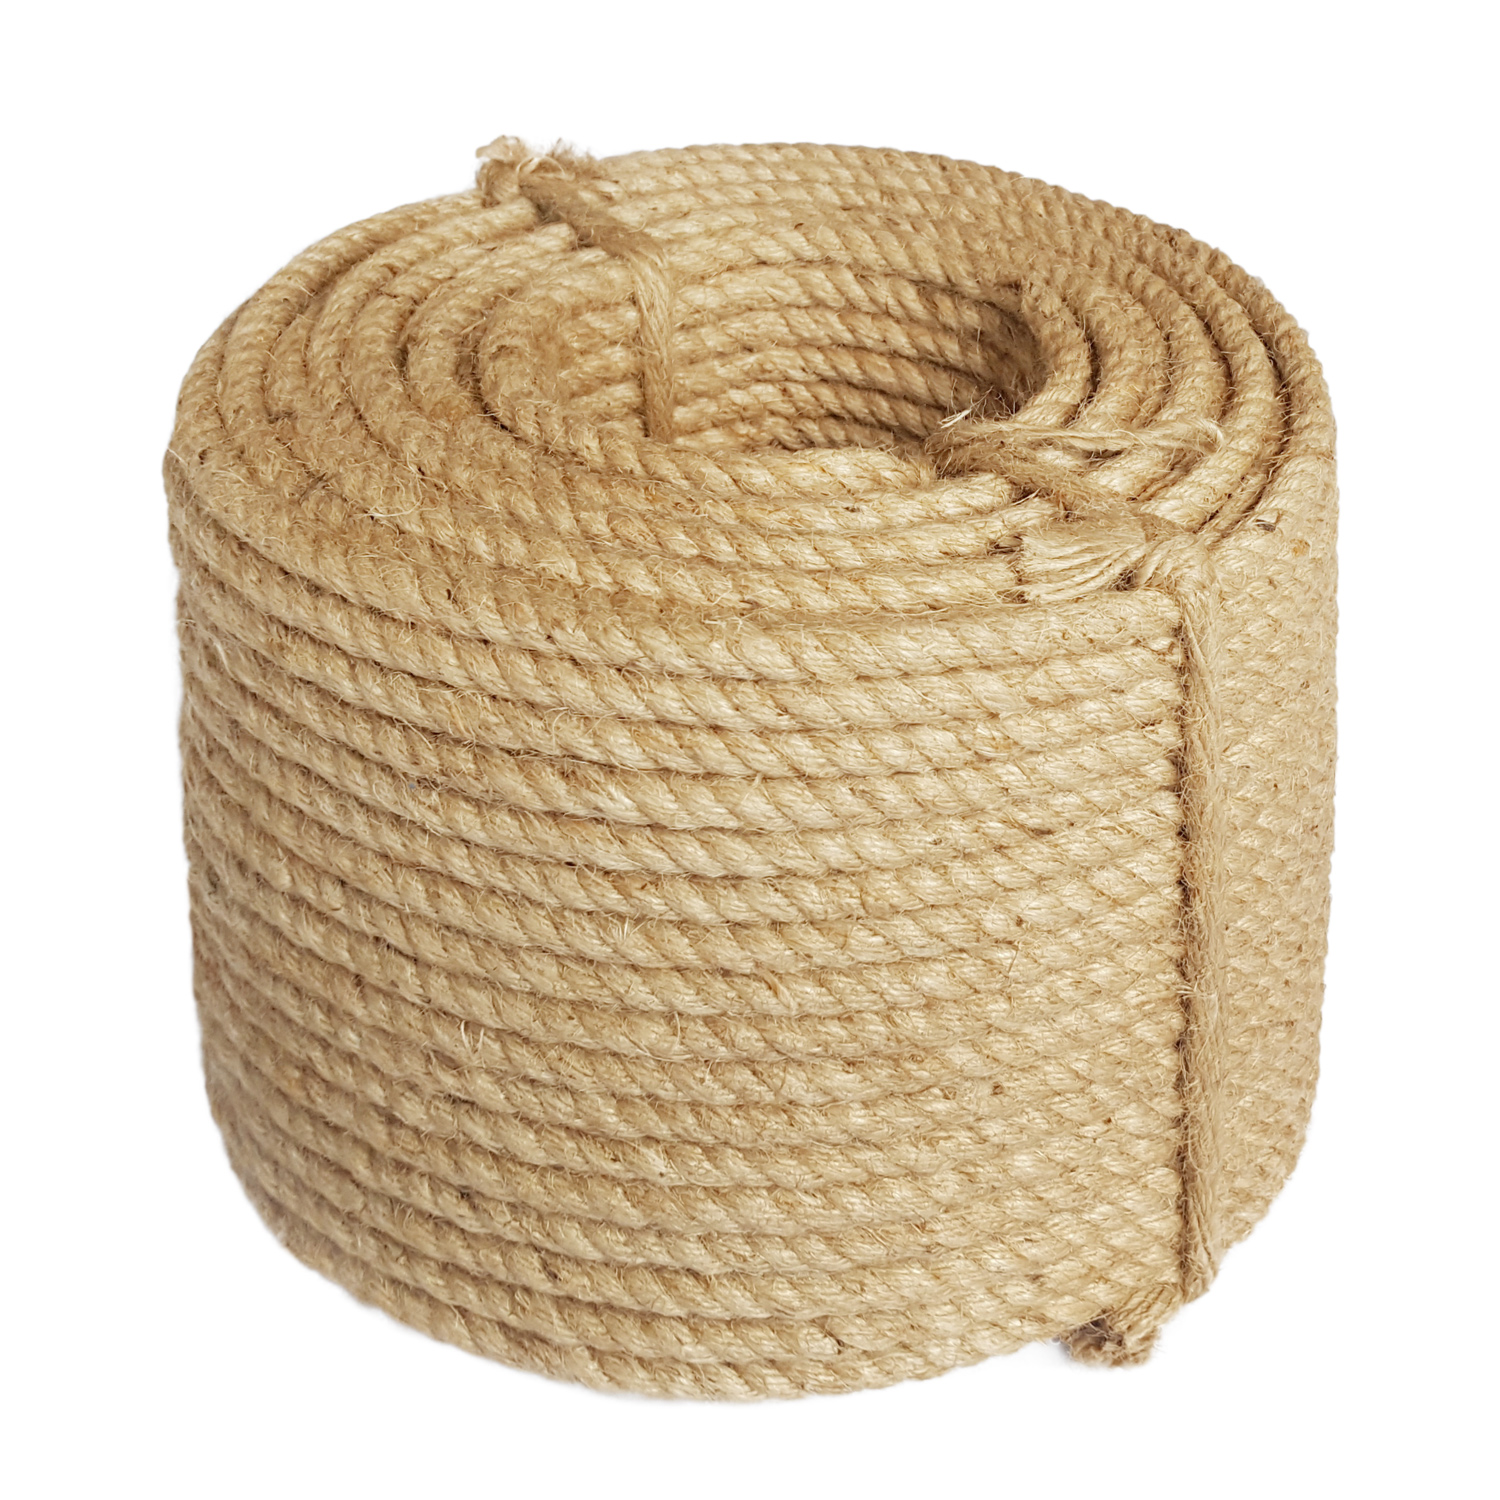 sisalseil 6mm 100m sisal seil minitrossen rope naturseil kratzbaum tauwerk ebay. Black Bedroom Furniture Sets. Home Design Ideas